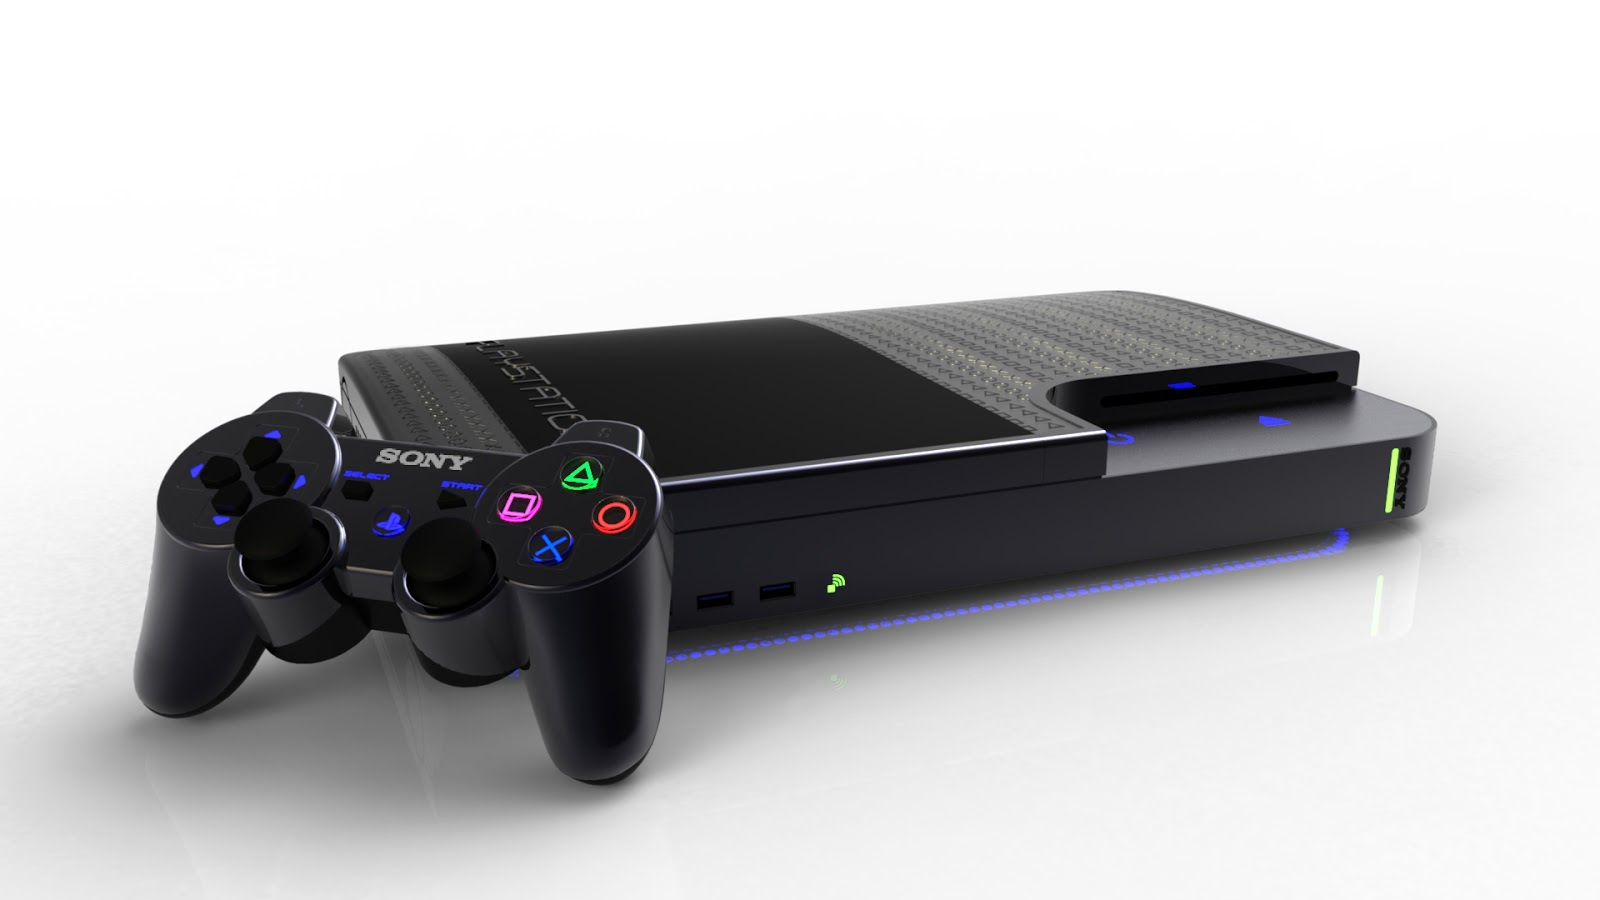 Playstation 4 is definitely coming this year - but where?